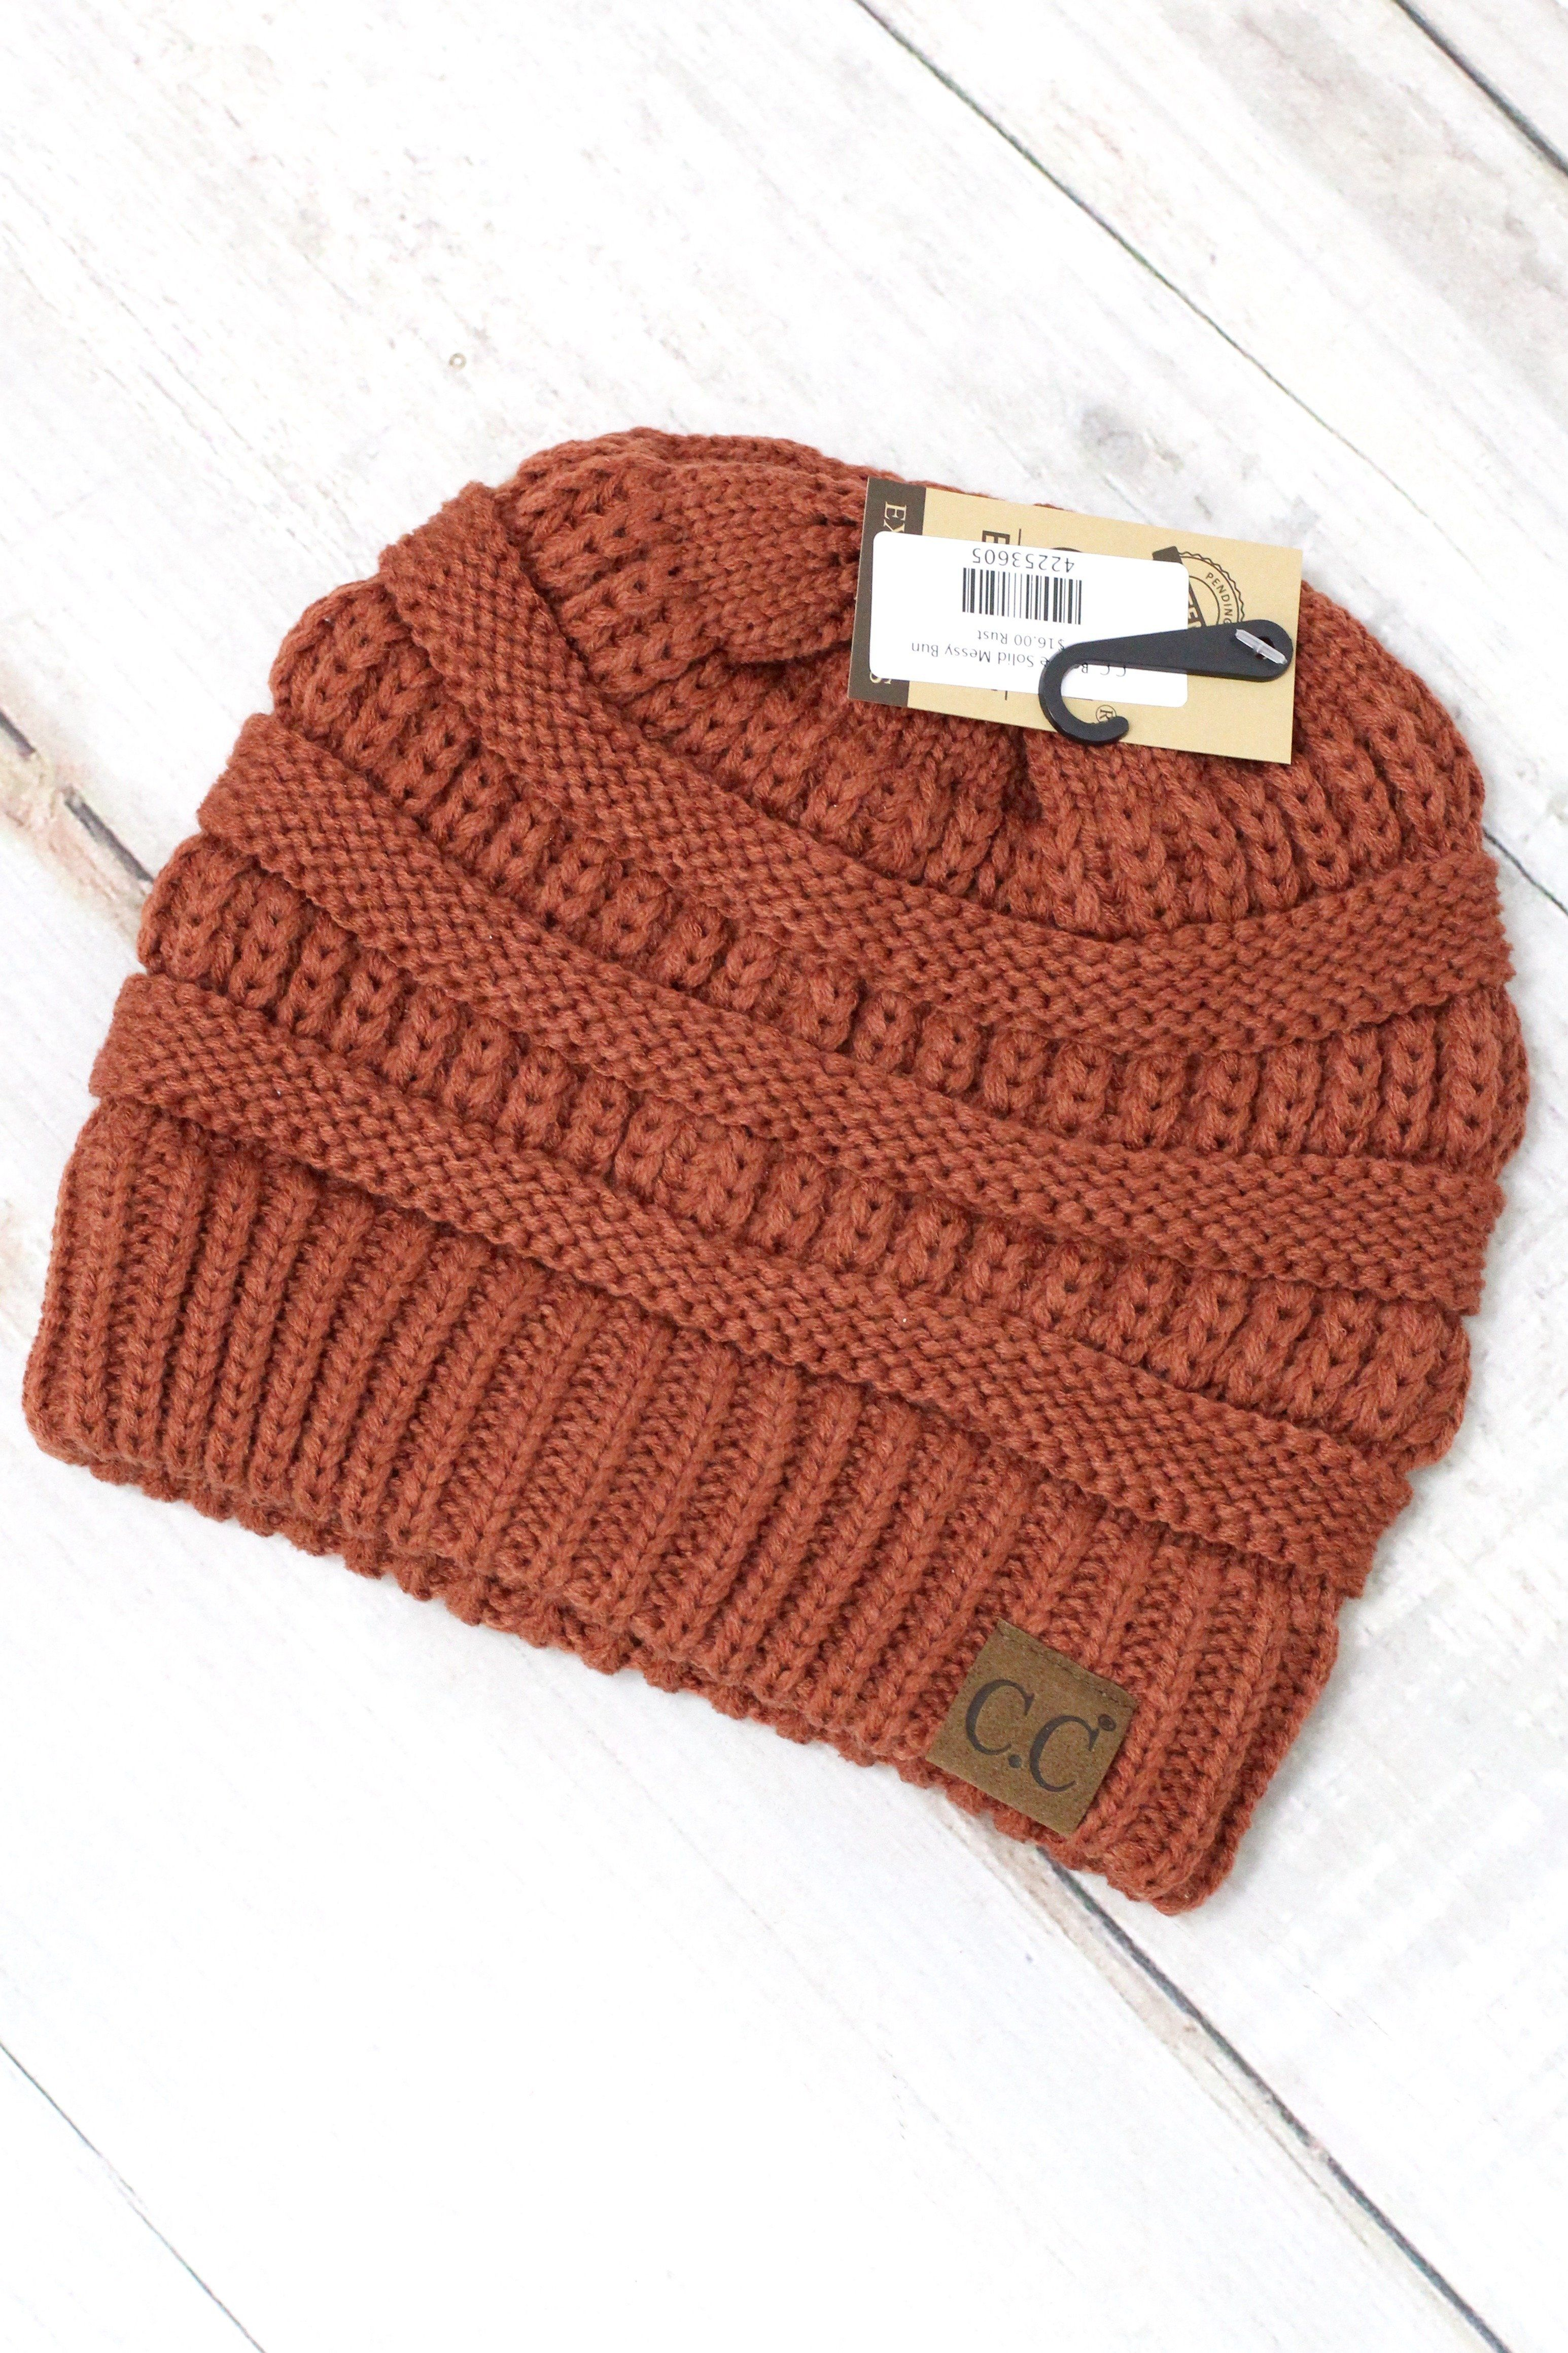 831724cbec2 Original CC beanie. Features messy bun hole in the top. Wear with a  ponytail or messy bun sticking out